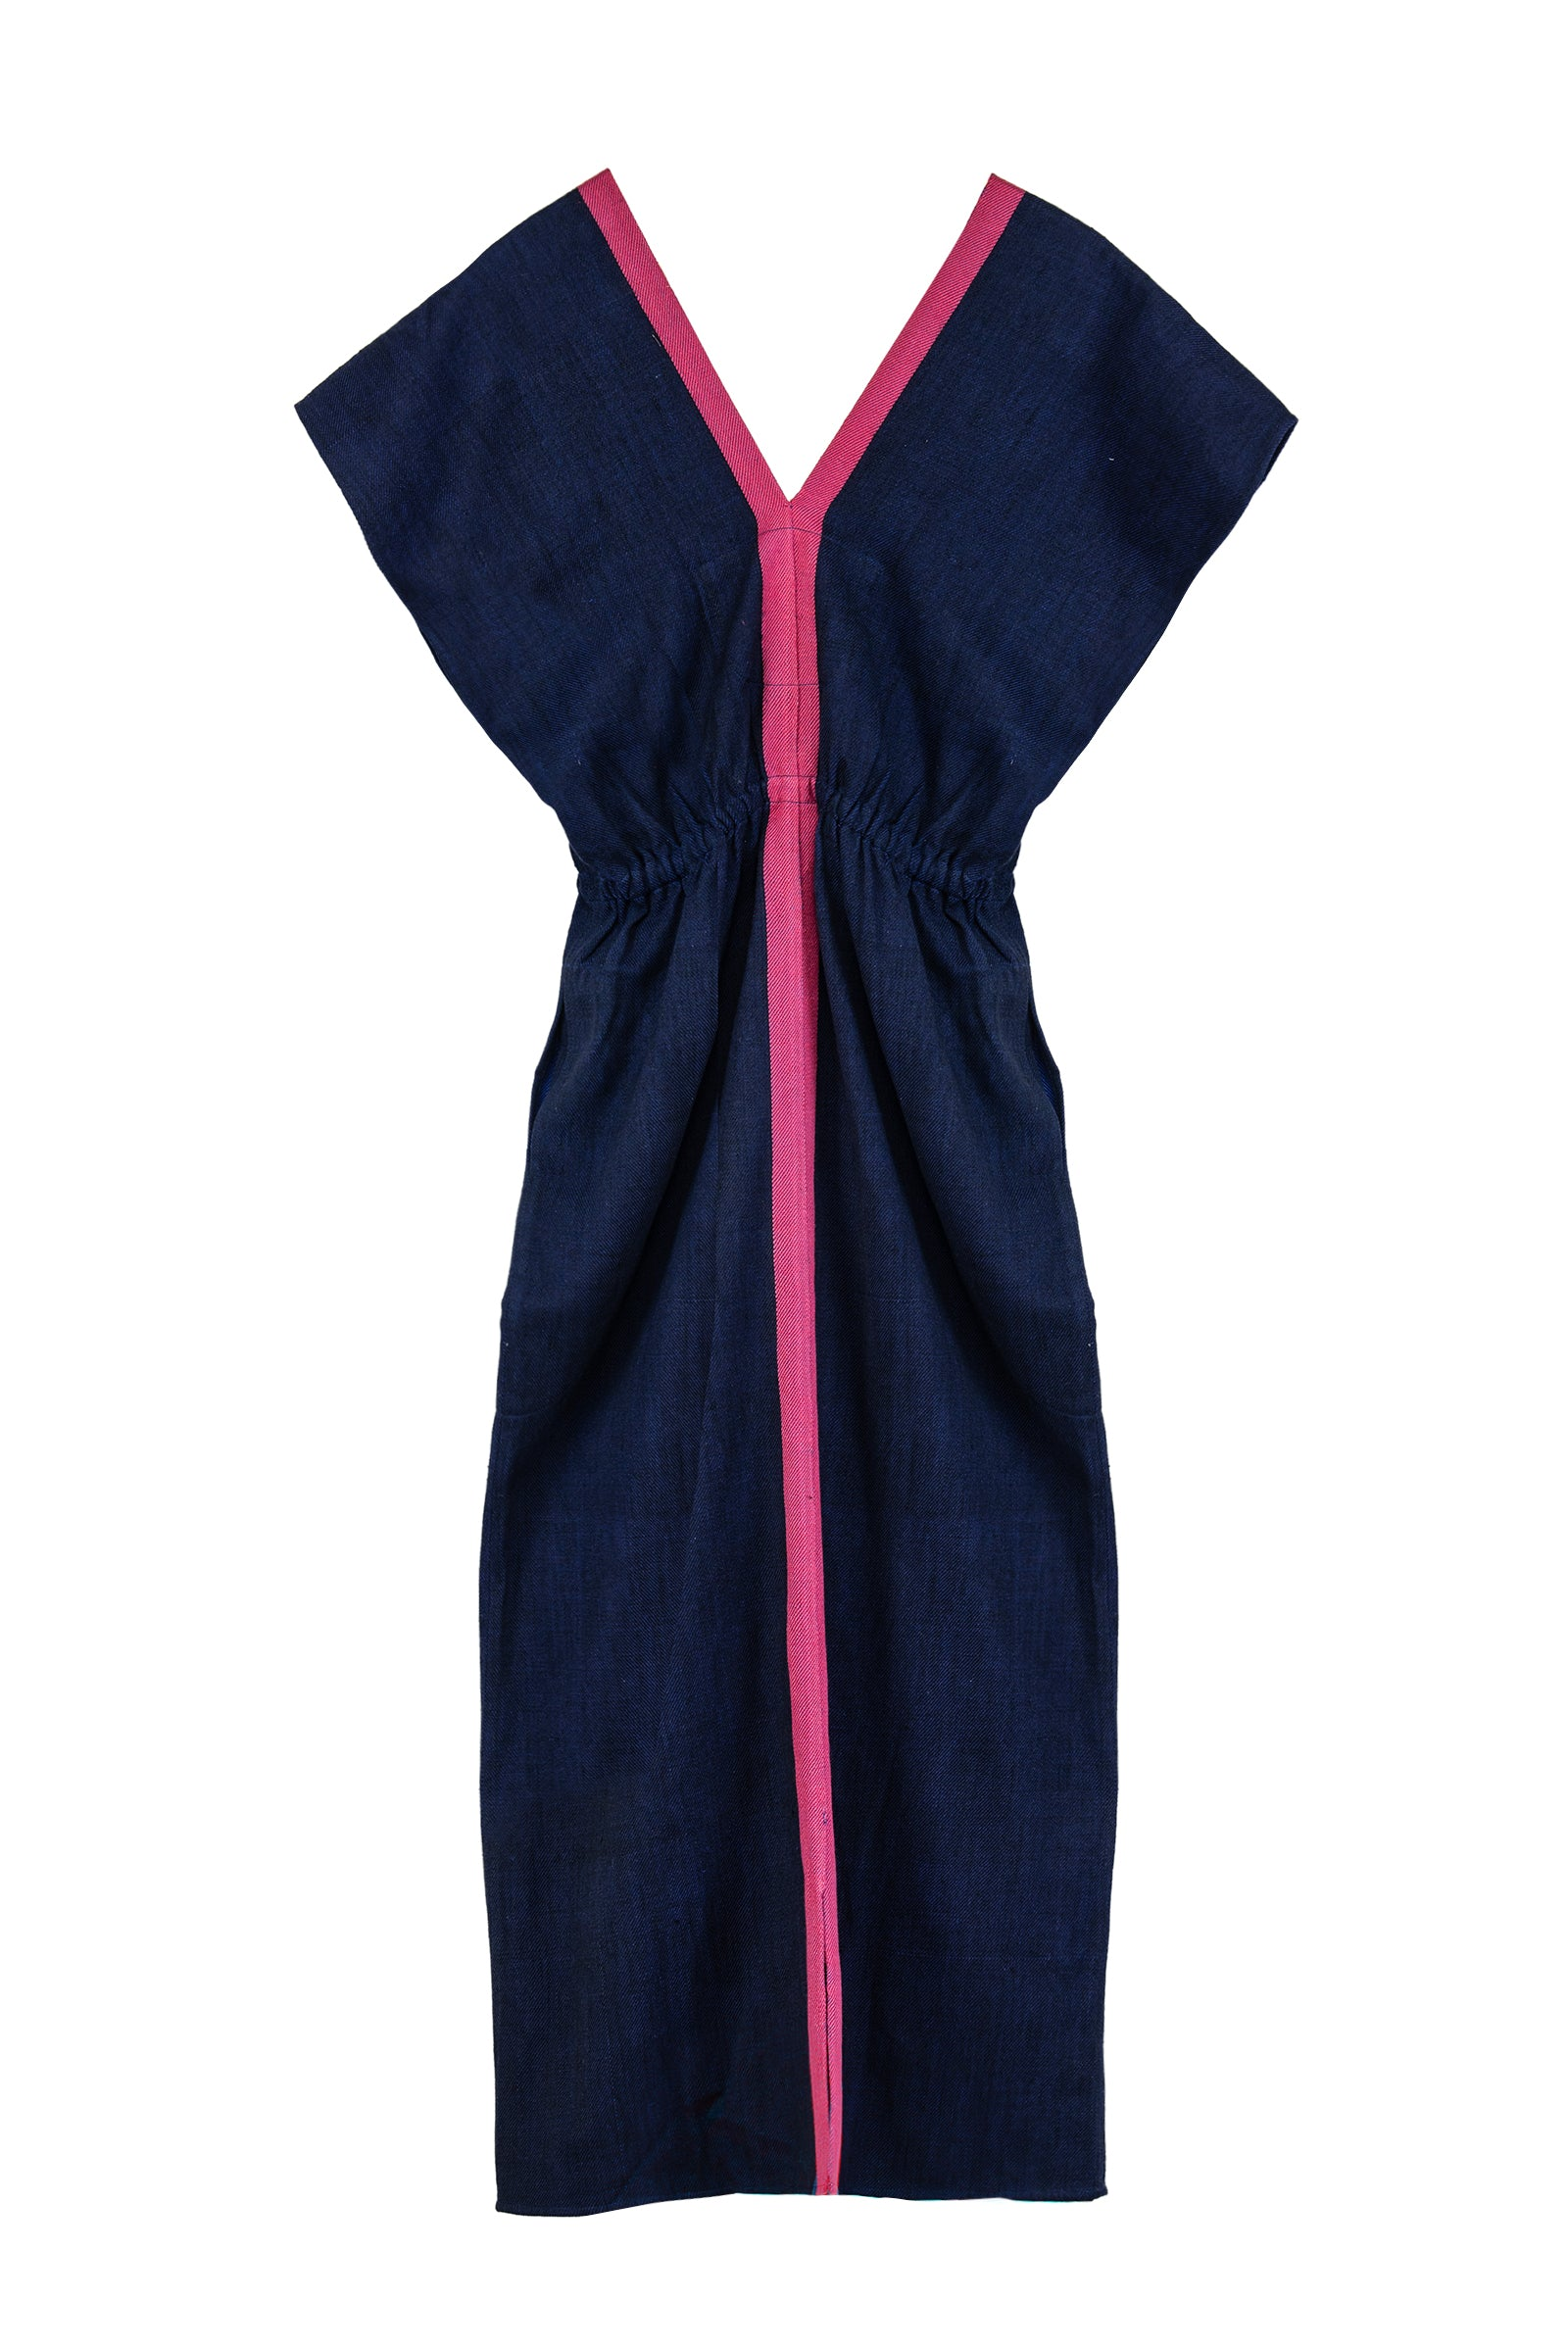 Ava Dress (Deep Indigo)